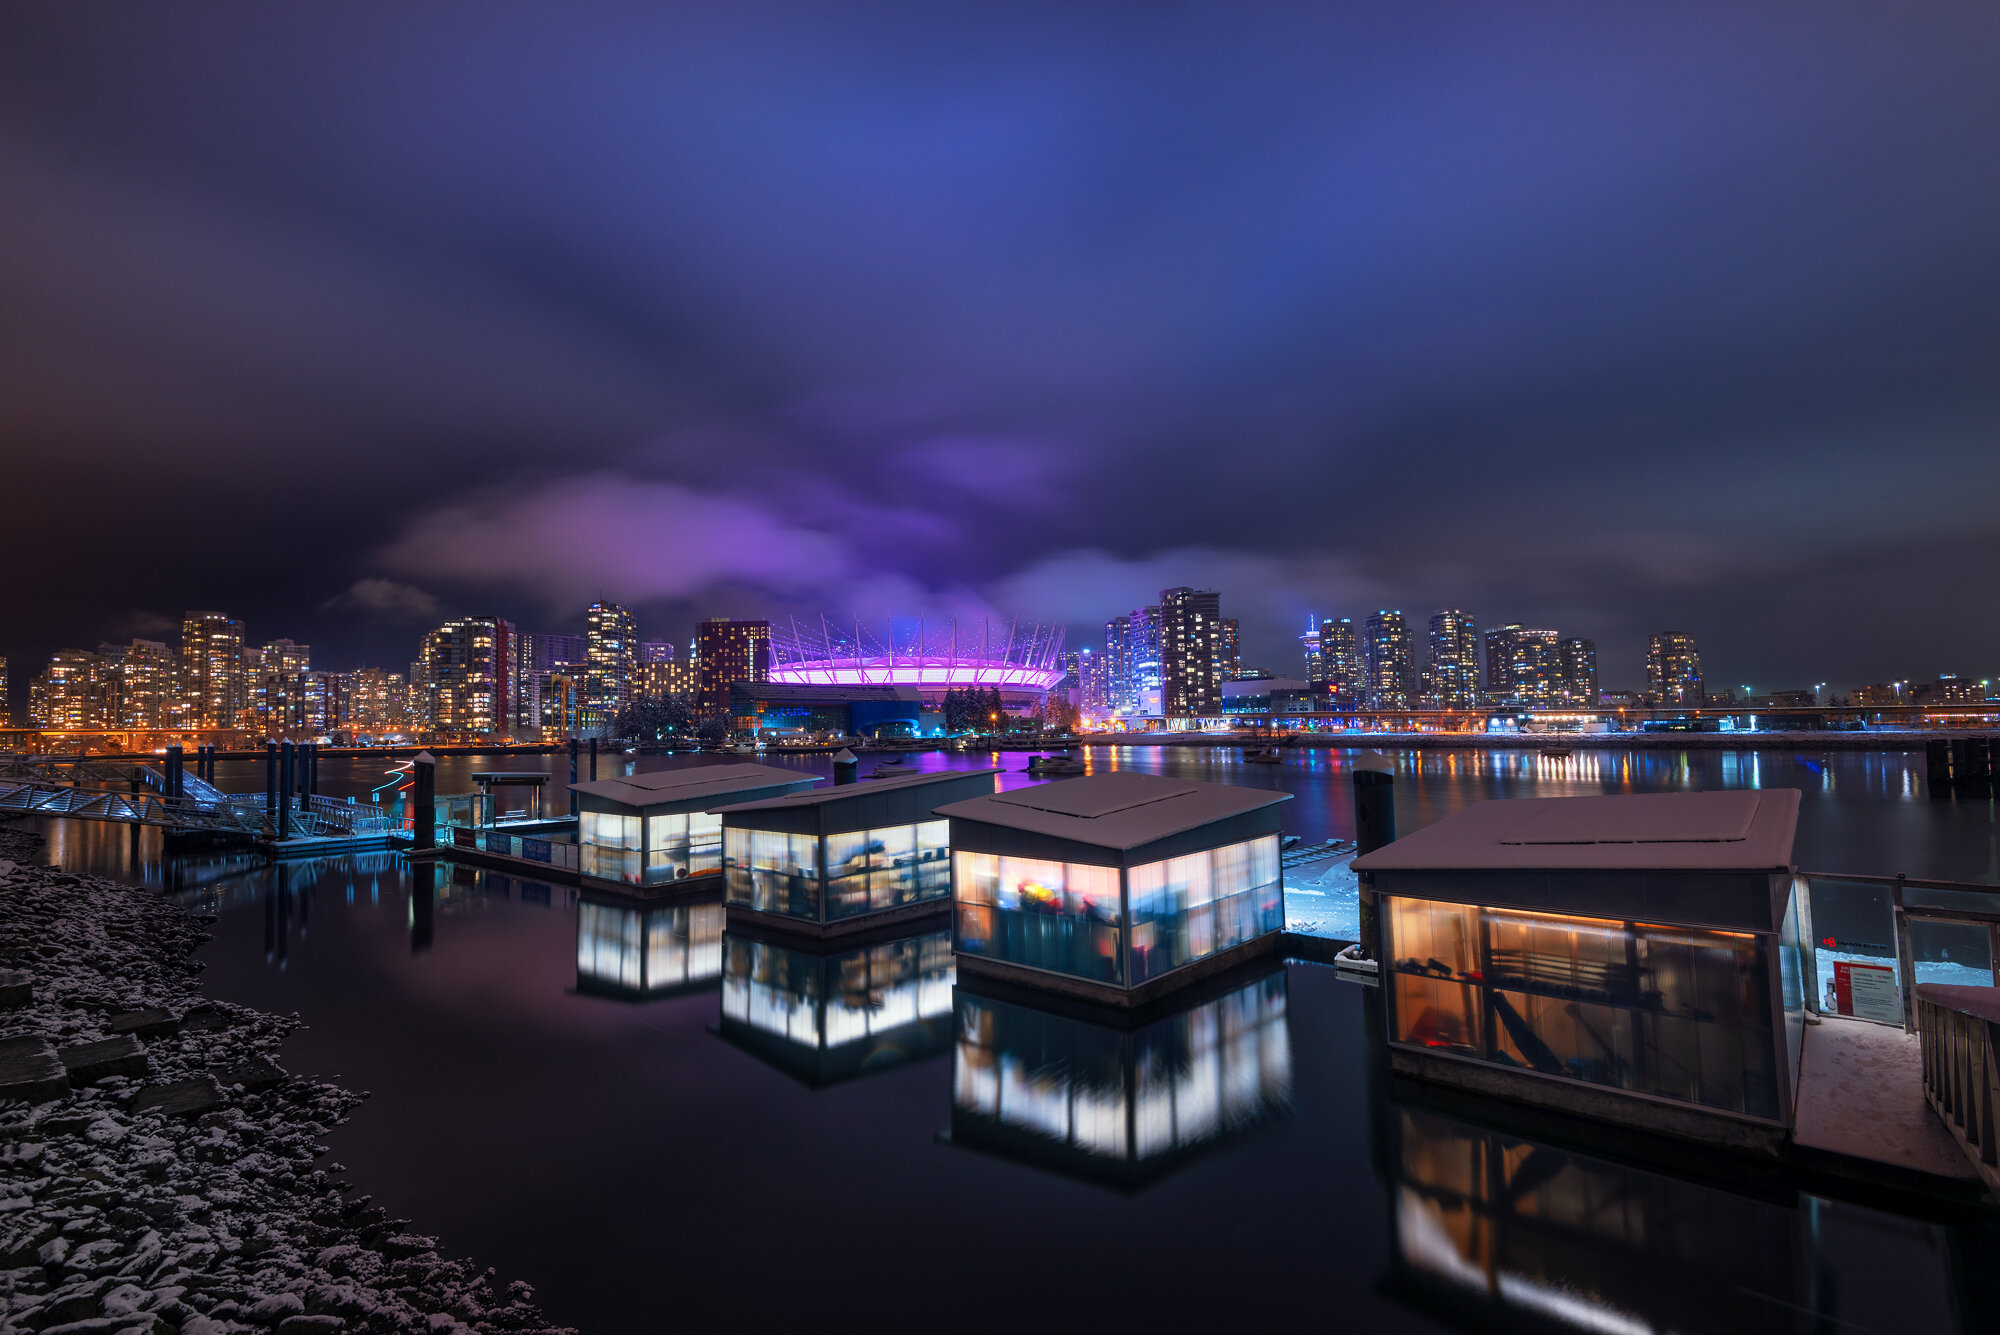 Vancouver City Photography: 'Purple Hues'